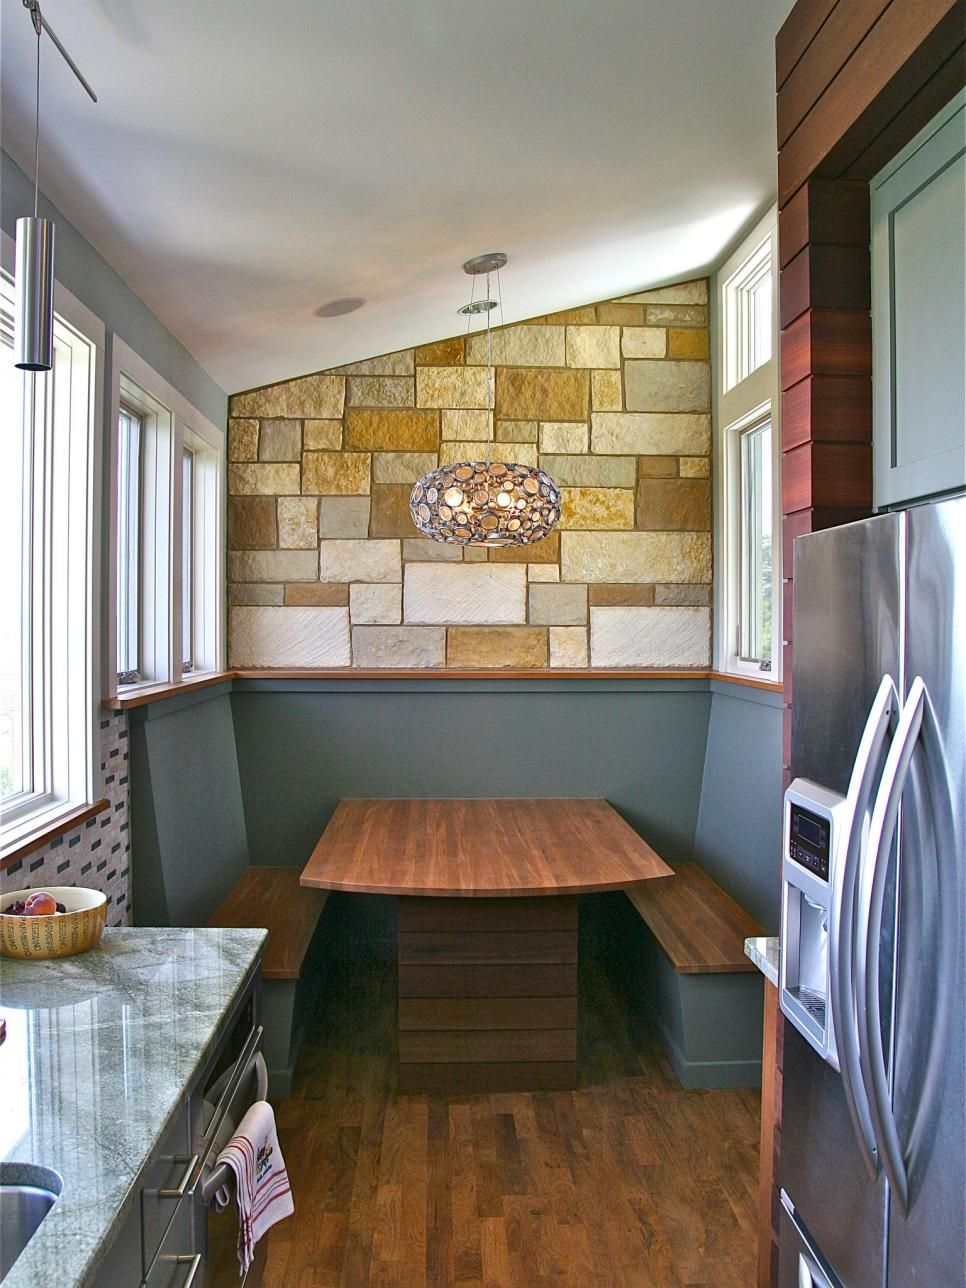 An intimate breakfast booth off the main kitchen work area provides ...